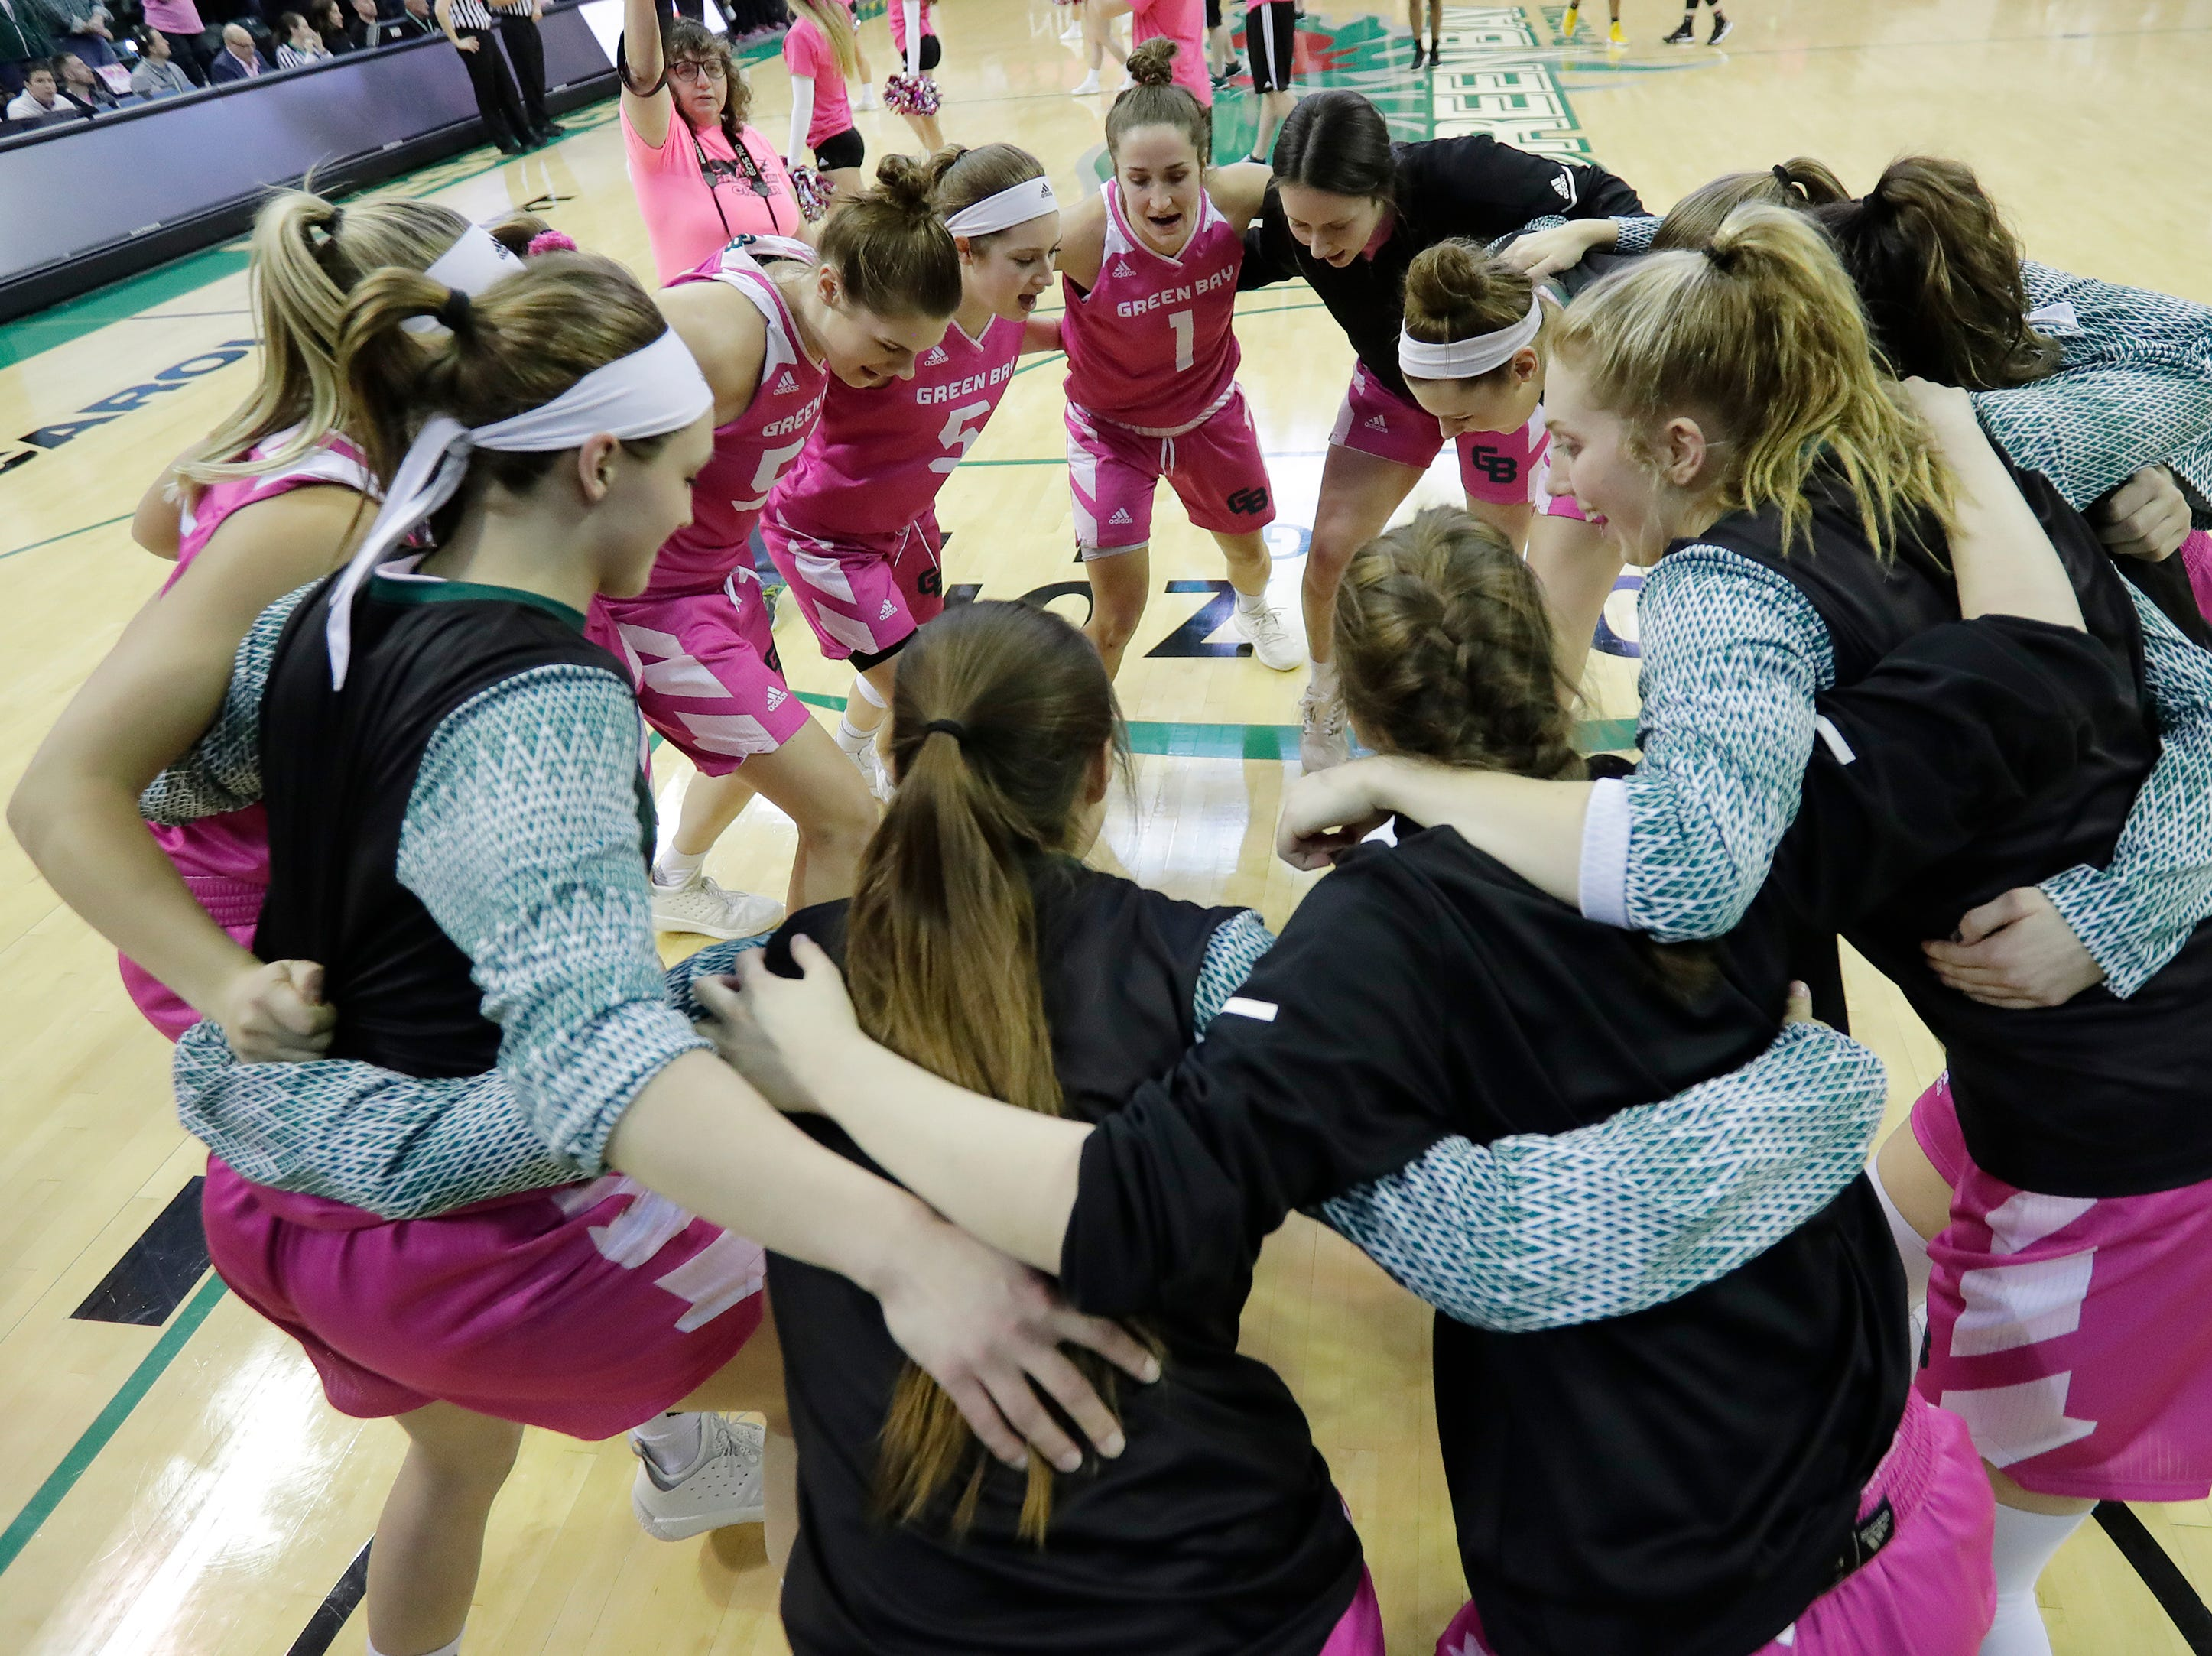 Green Bay Phoenix players huddle before facing Wright State in a Horizon League women's basketball game at the Kress Center on Saturday, February 9, 2019 in Green Bay, Wis.